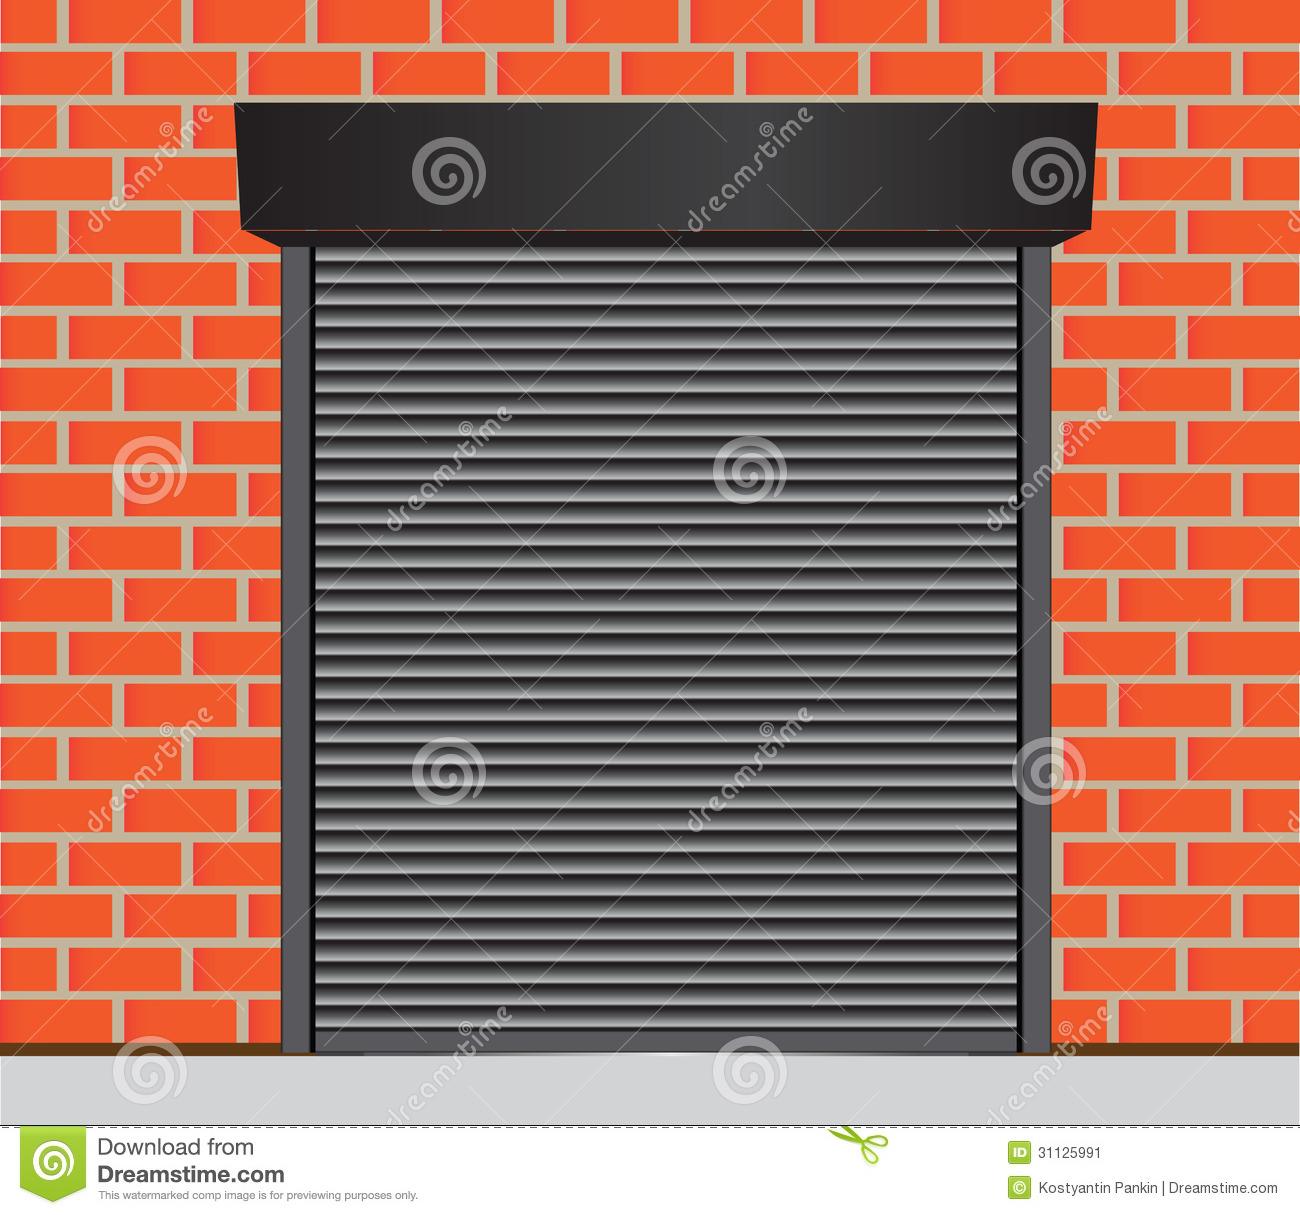 Garage doors clipart - Royalty Free Stock Photo Download Garage Doors